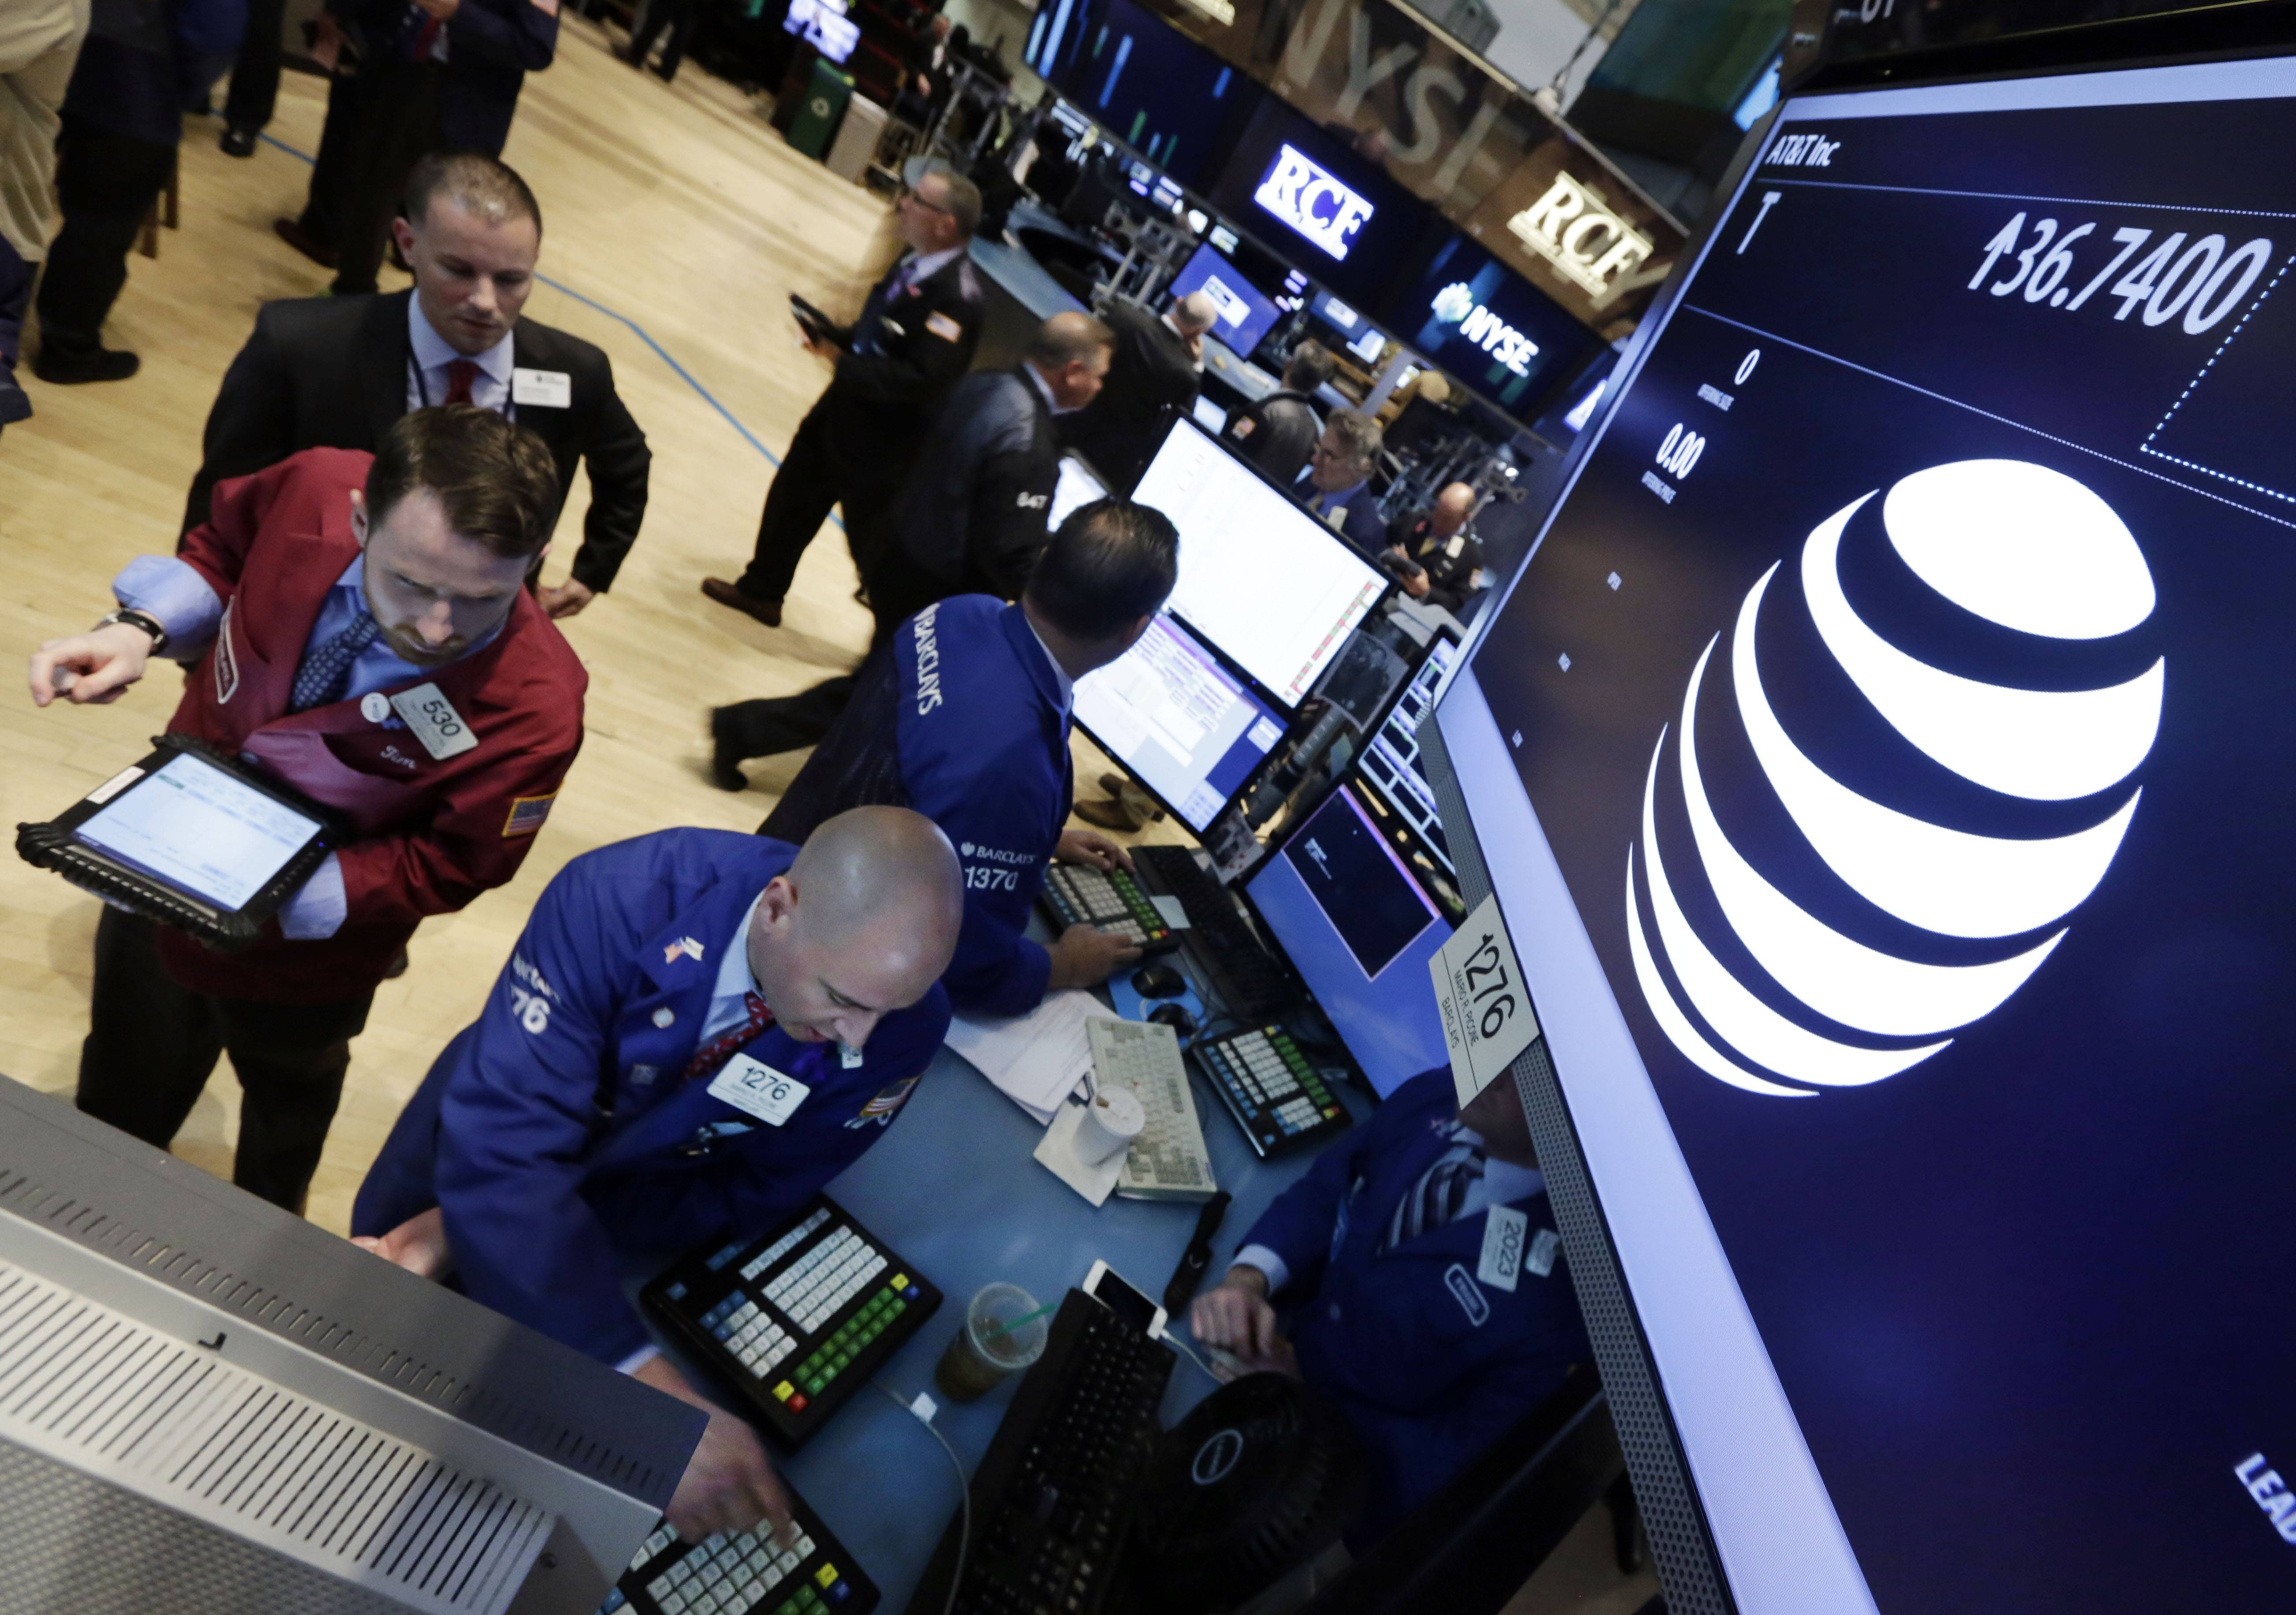 The stock market drifted to a higher finish on Monday. With no major new economic data to chew on, investors focused on a batch of news on corporate deals, including AT&T's proposed takeover of satellite TV provider DirecTV.